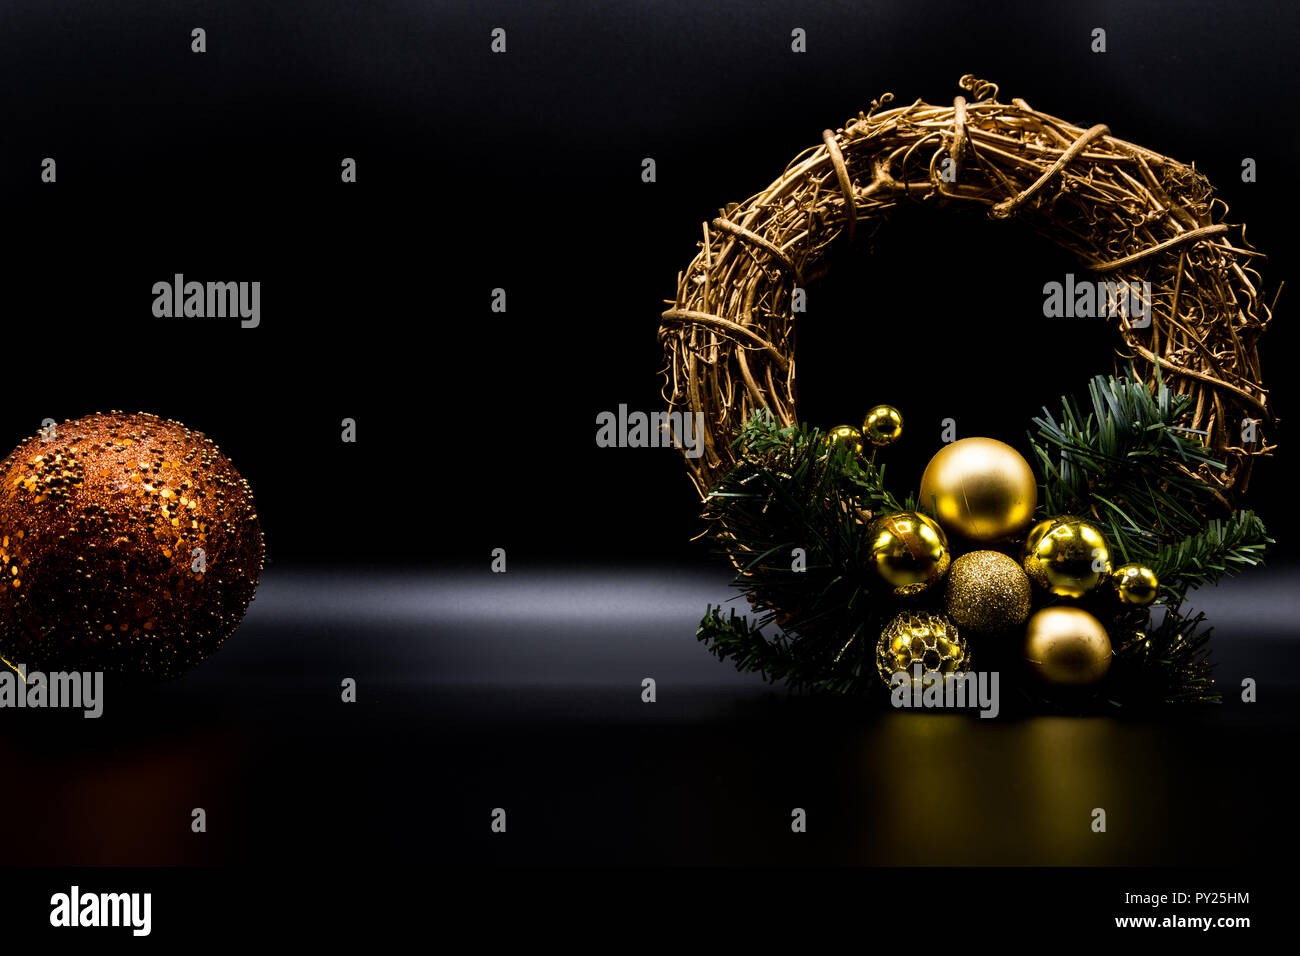 Cool Holidays Wallpaper Background Of Christmas Decorations